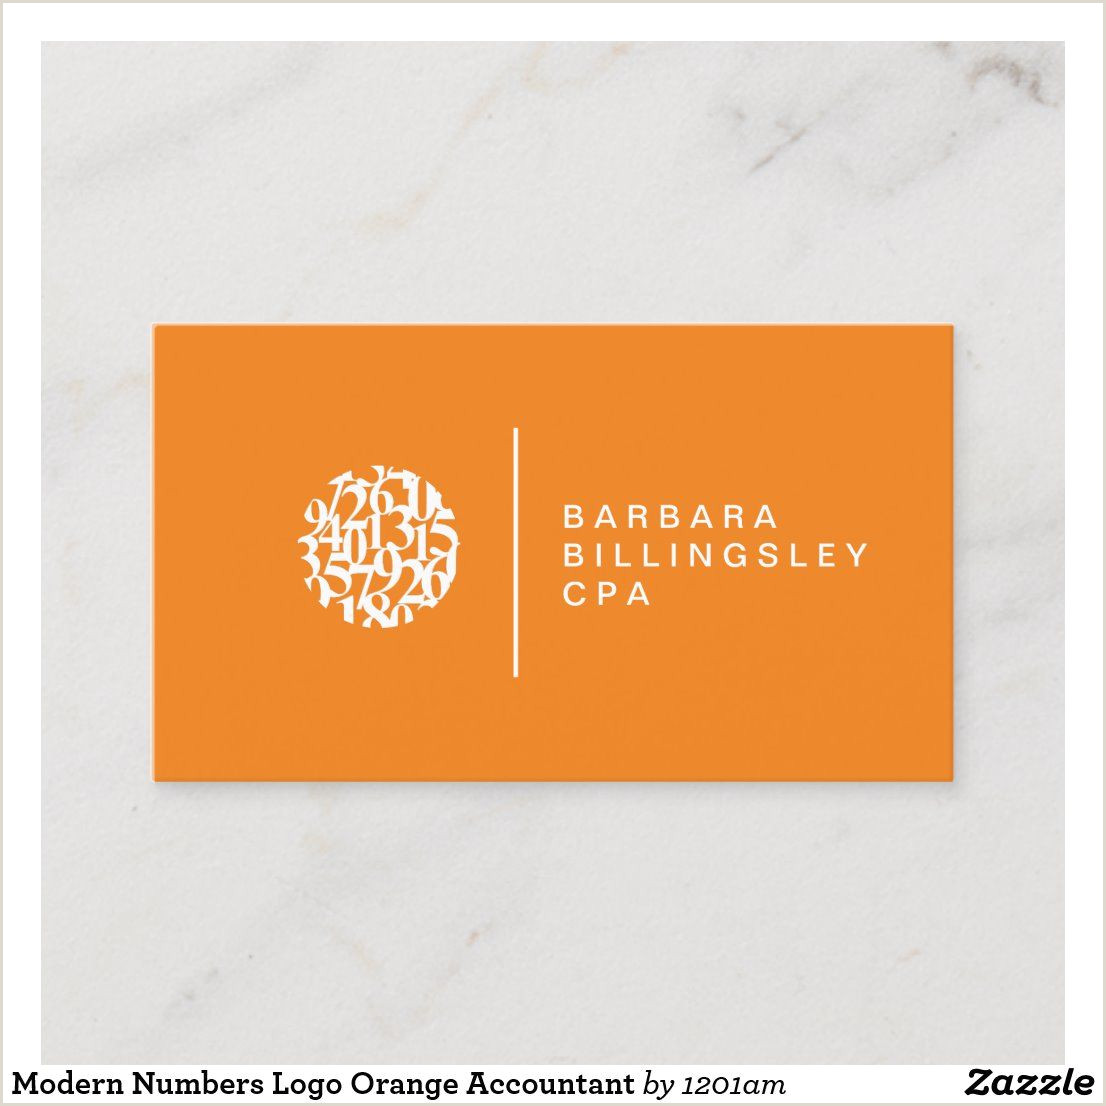 Phone Numbers On Business Cards Modern Numbers Logo Orange Accountant Business Card